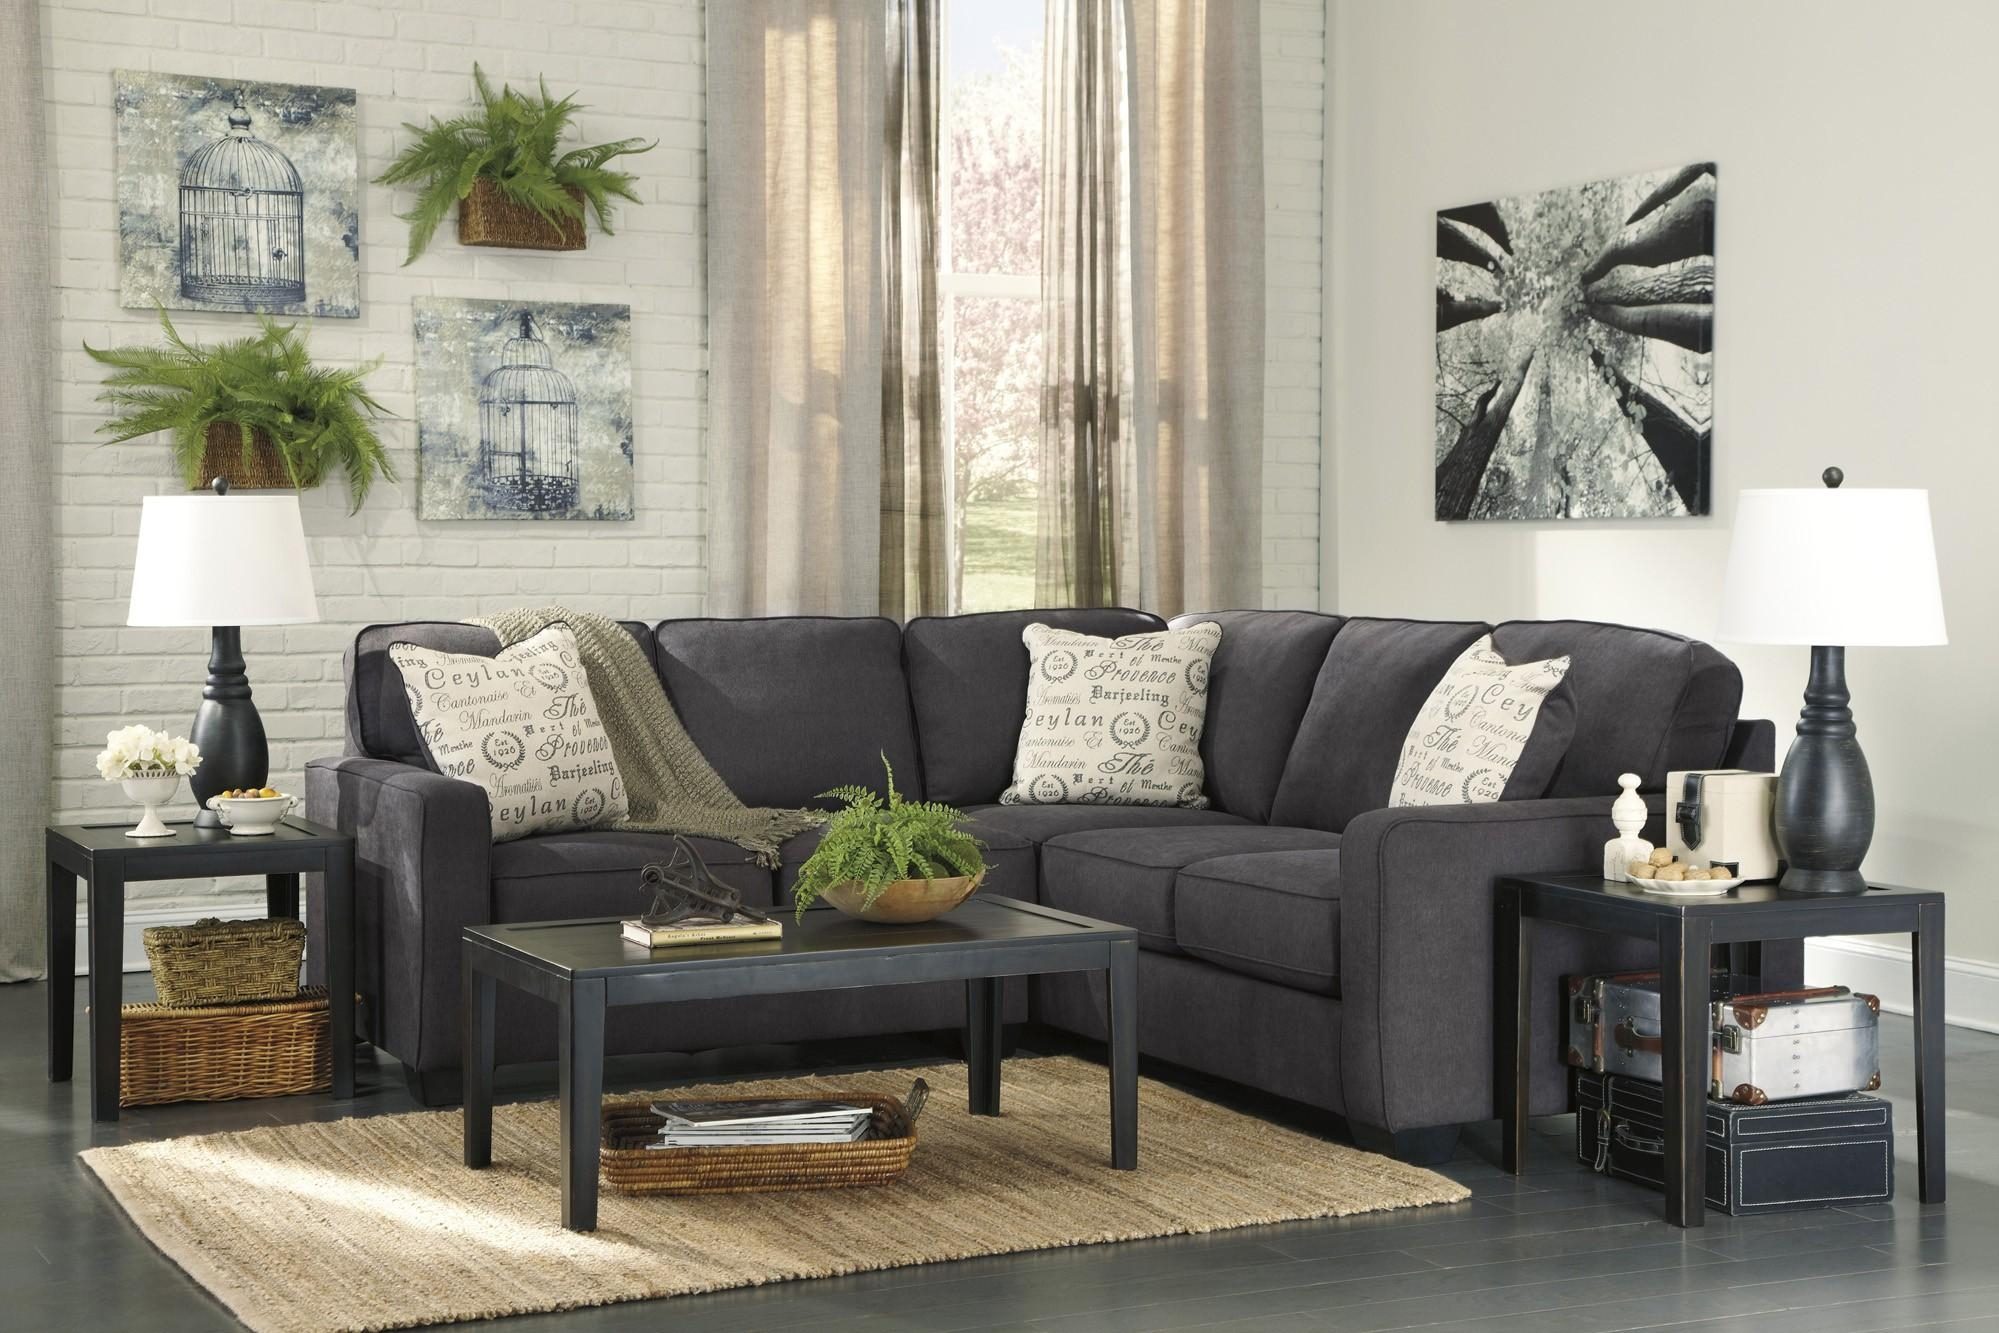 Interior: Gorgeous Lady Charcoal Sectional For Living Room With Regard To Individual Piece Sectional Sofas (View 14 of 20)